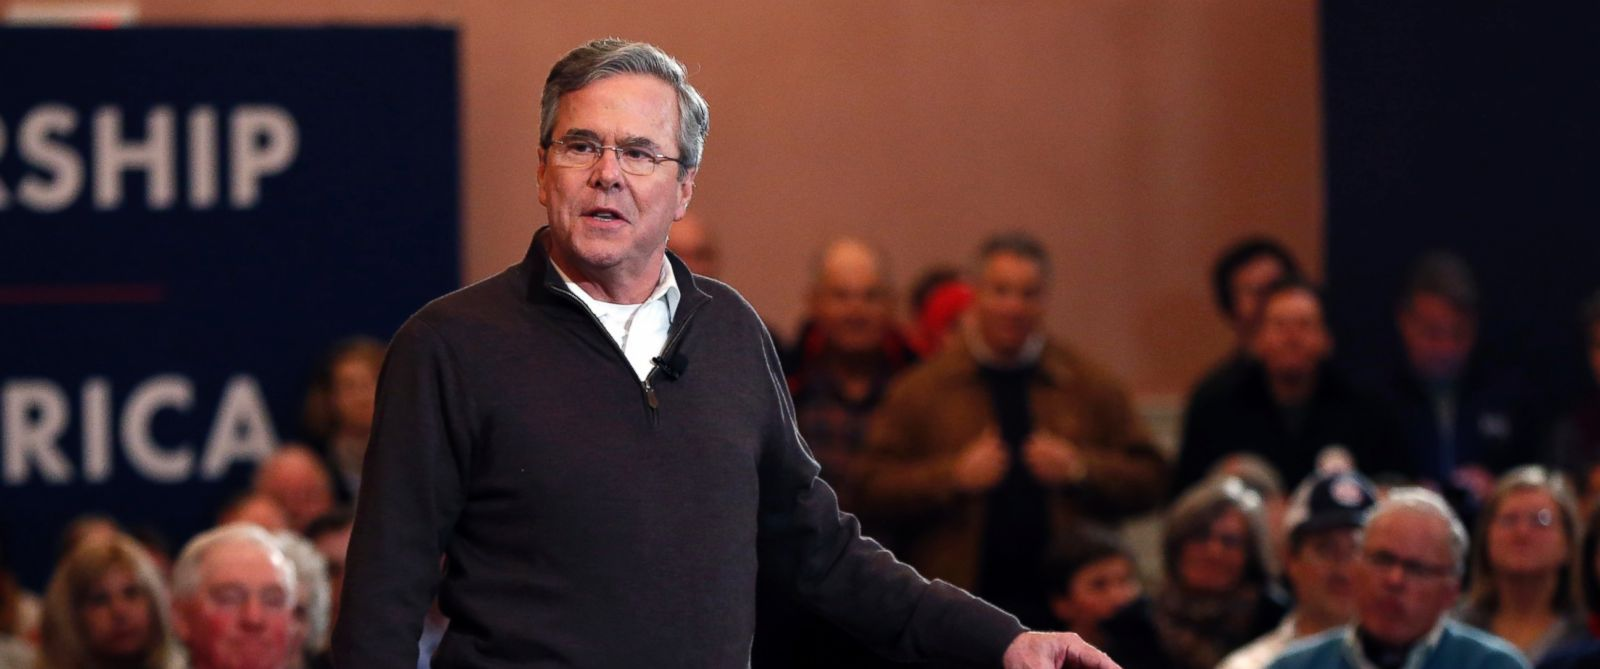 PHOTO: Republican presidential candidate, former Florida Gov. Jeb Bush, speaks at a campaign event, Feb. 8, 2016, in Portsmouth, N.H.